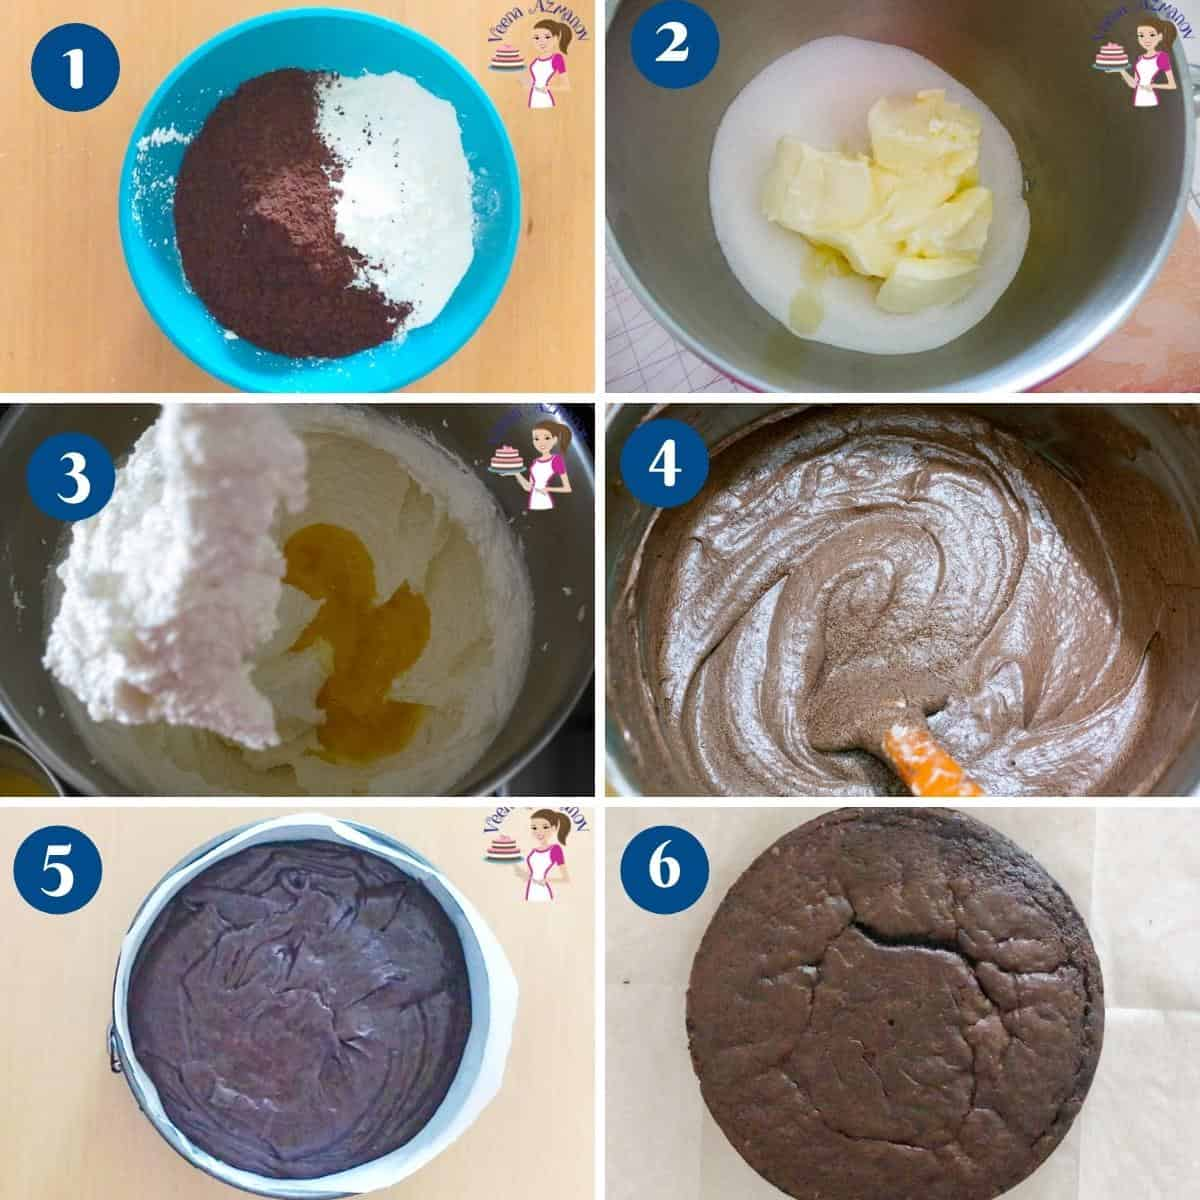 Progress pictures collage for making the chocolate cake.